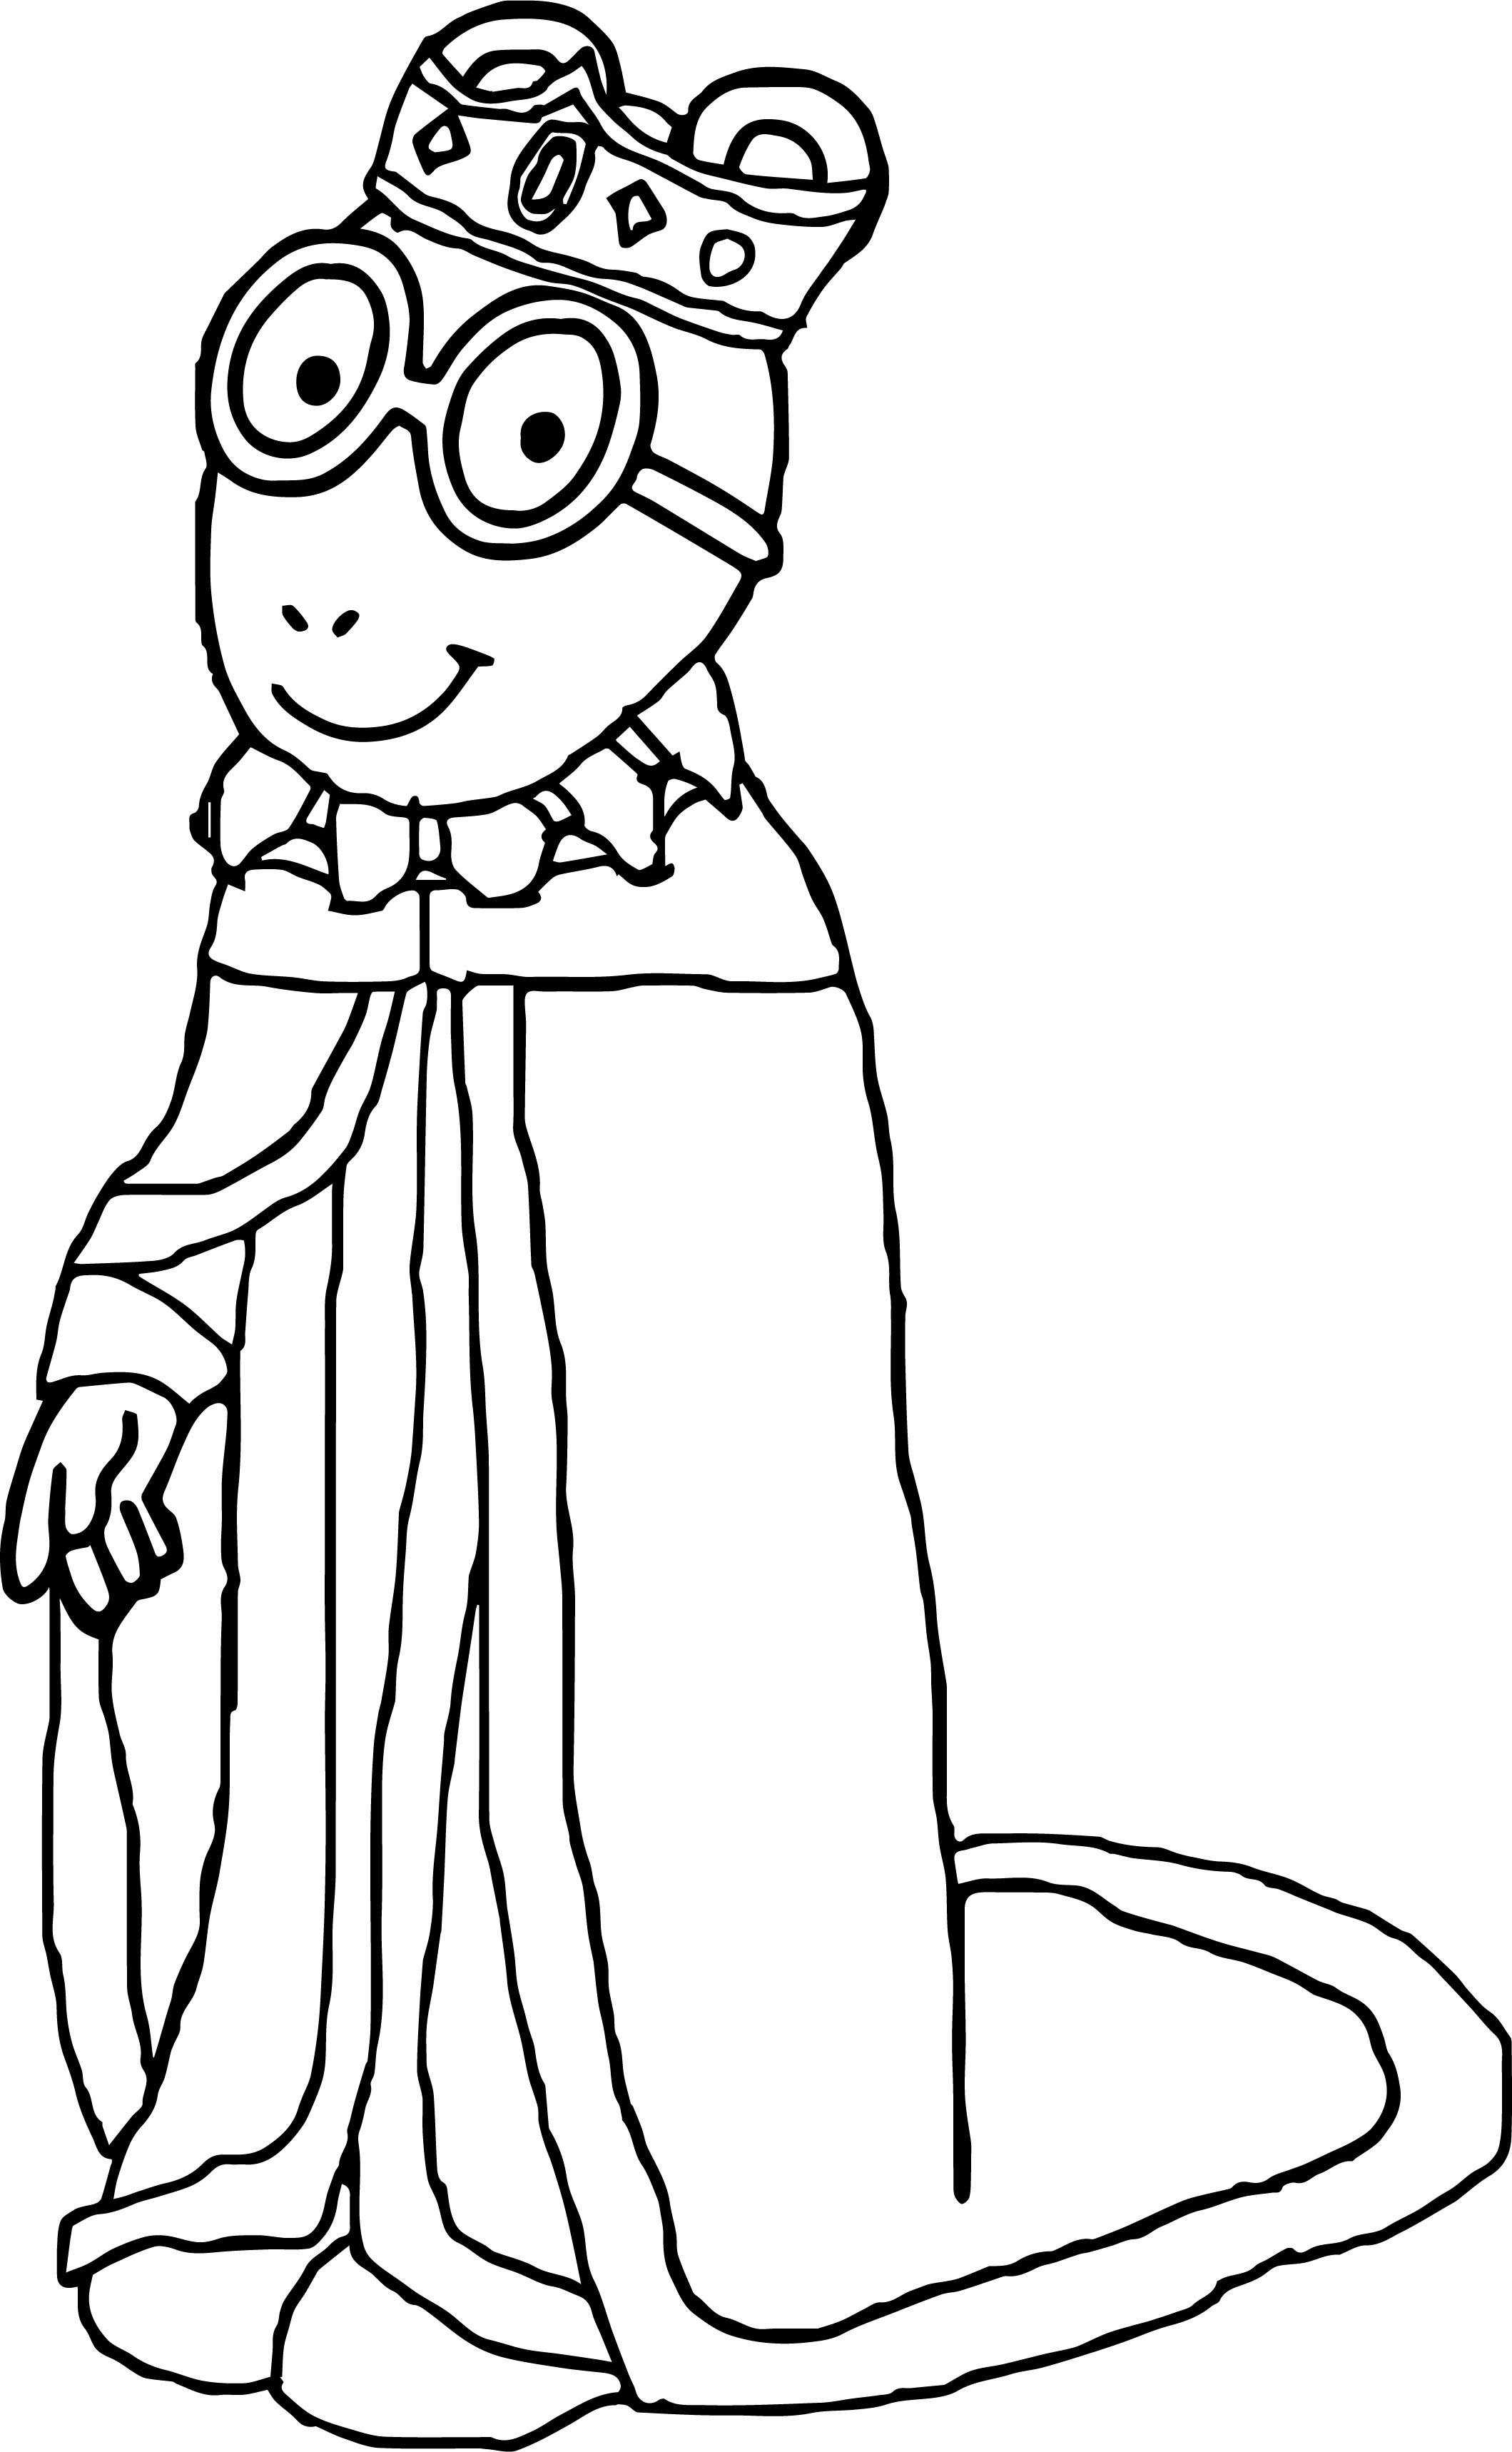 2119x3436 King Arthur Coloring Pictures Coloring Page For Kids